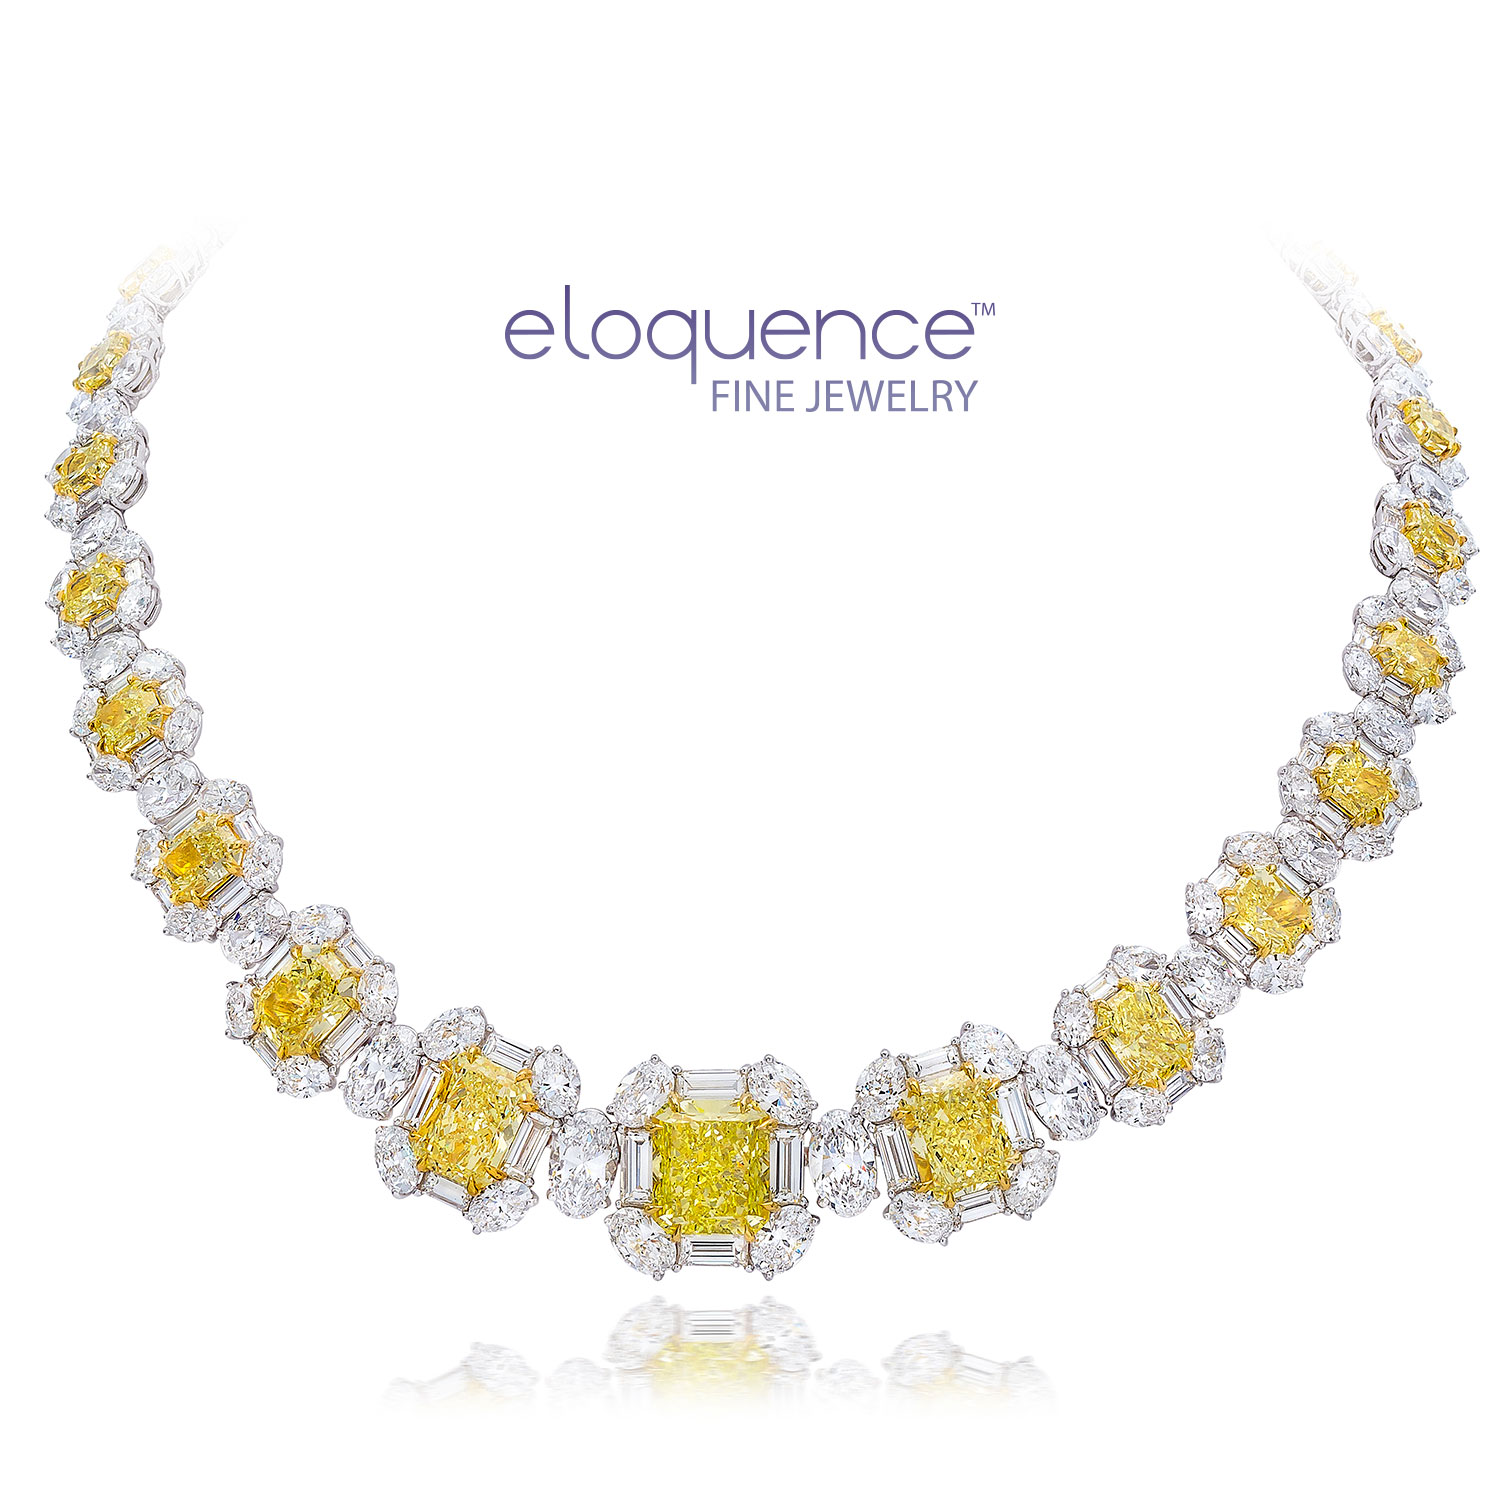 DN8215-Yellow-Diamond-Necklace-On-Bust-1500-ELOQ